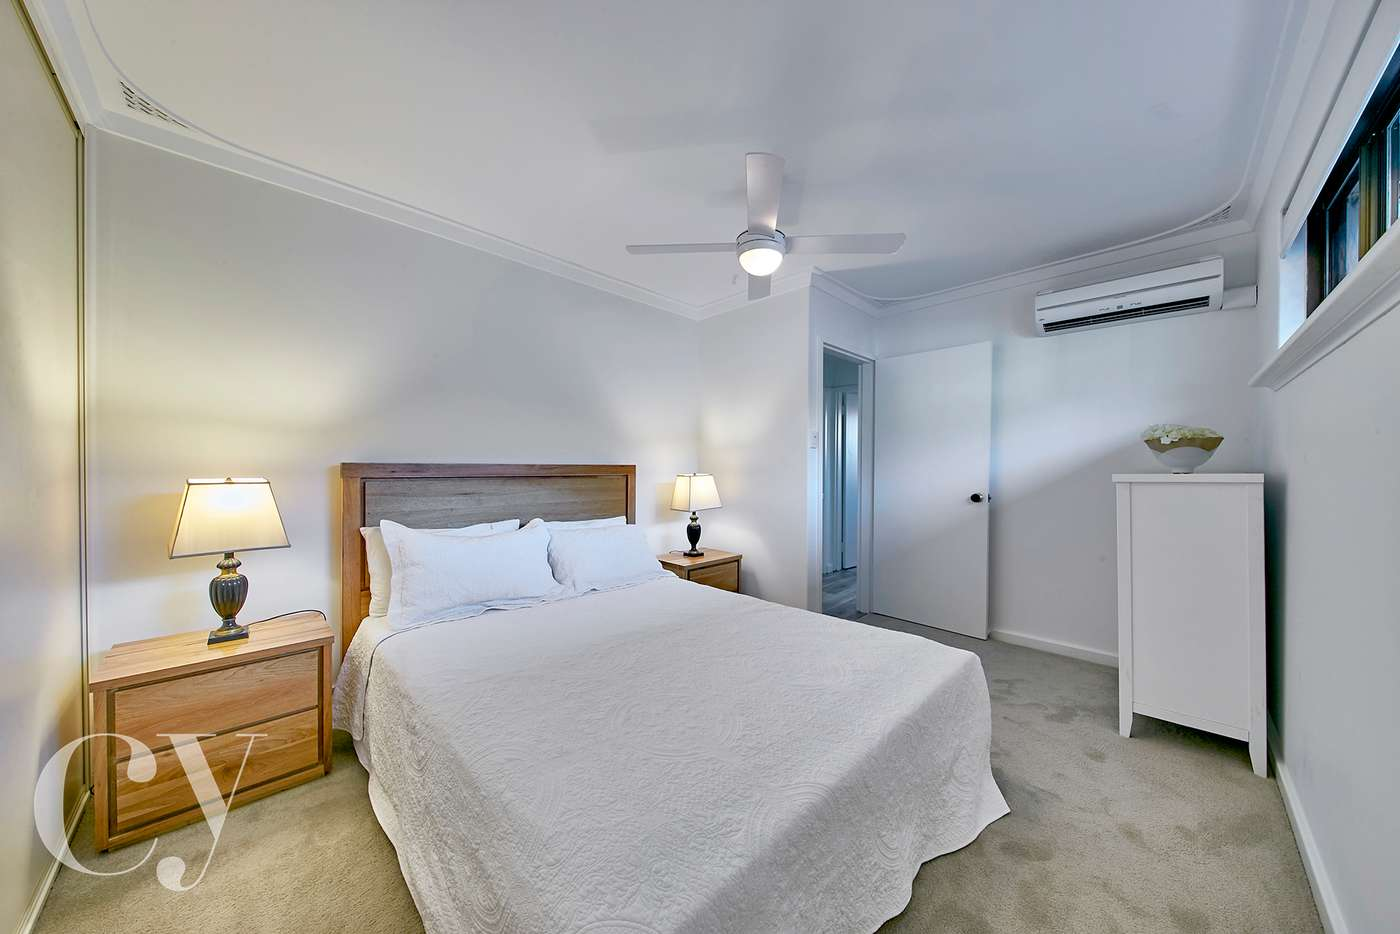 Fifth view of Homely villa listing, 16A Saunders Street, Como WA 6152